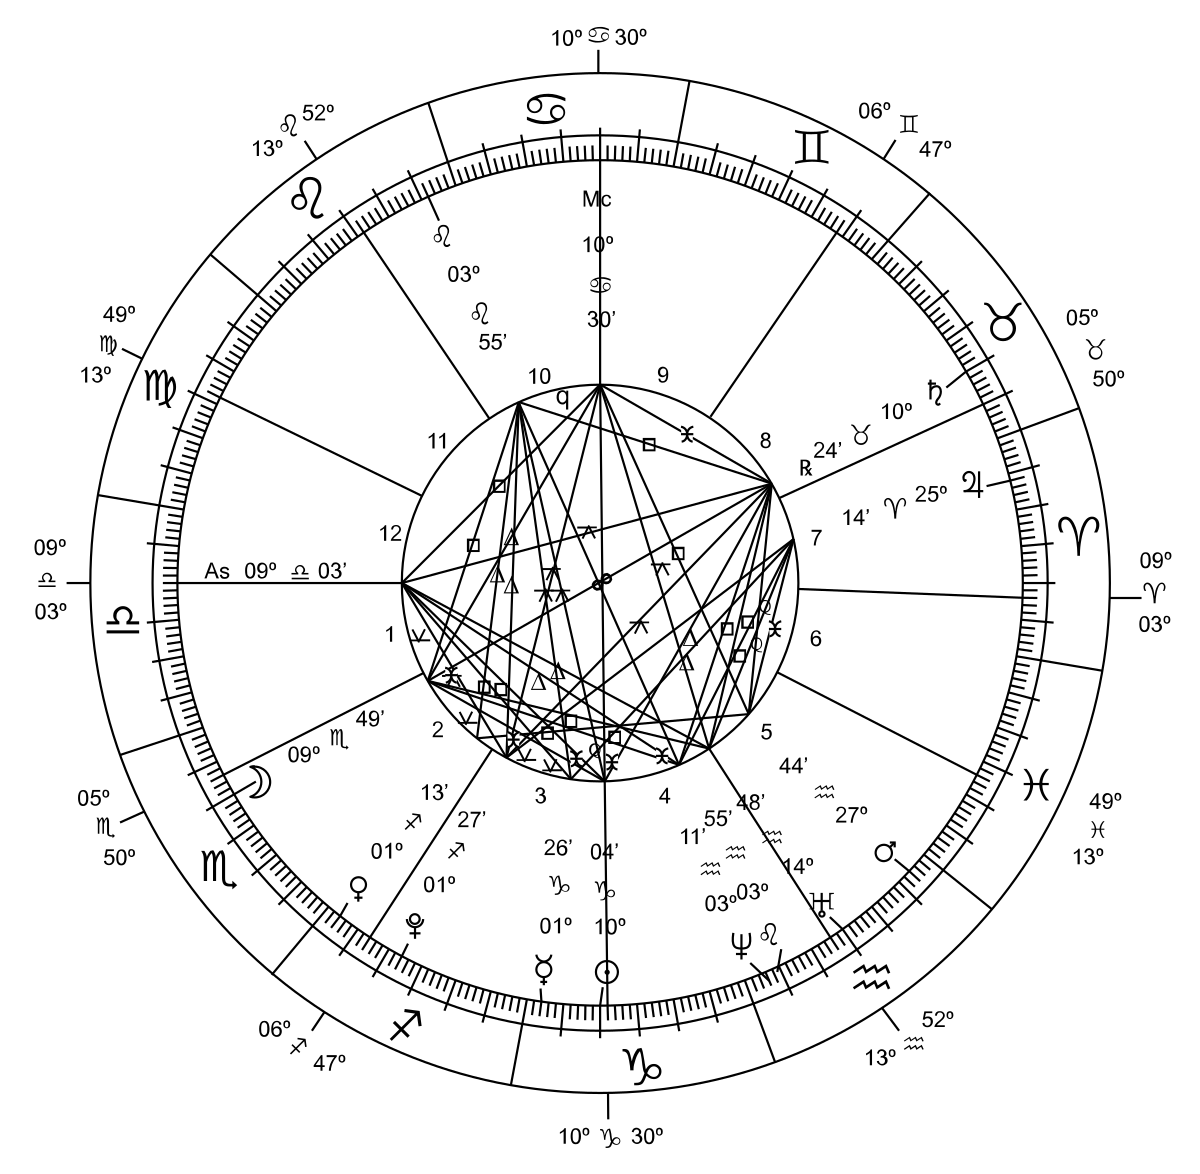 image royalty free stock Astrology and astronomy